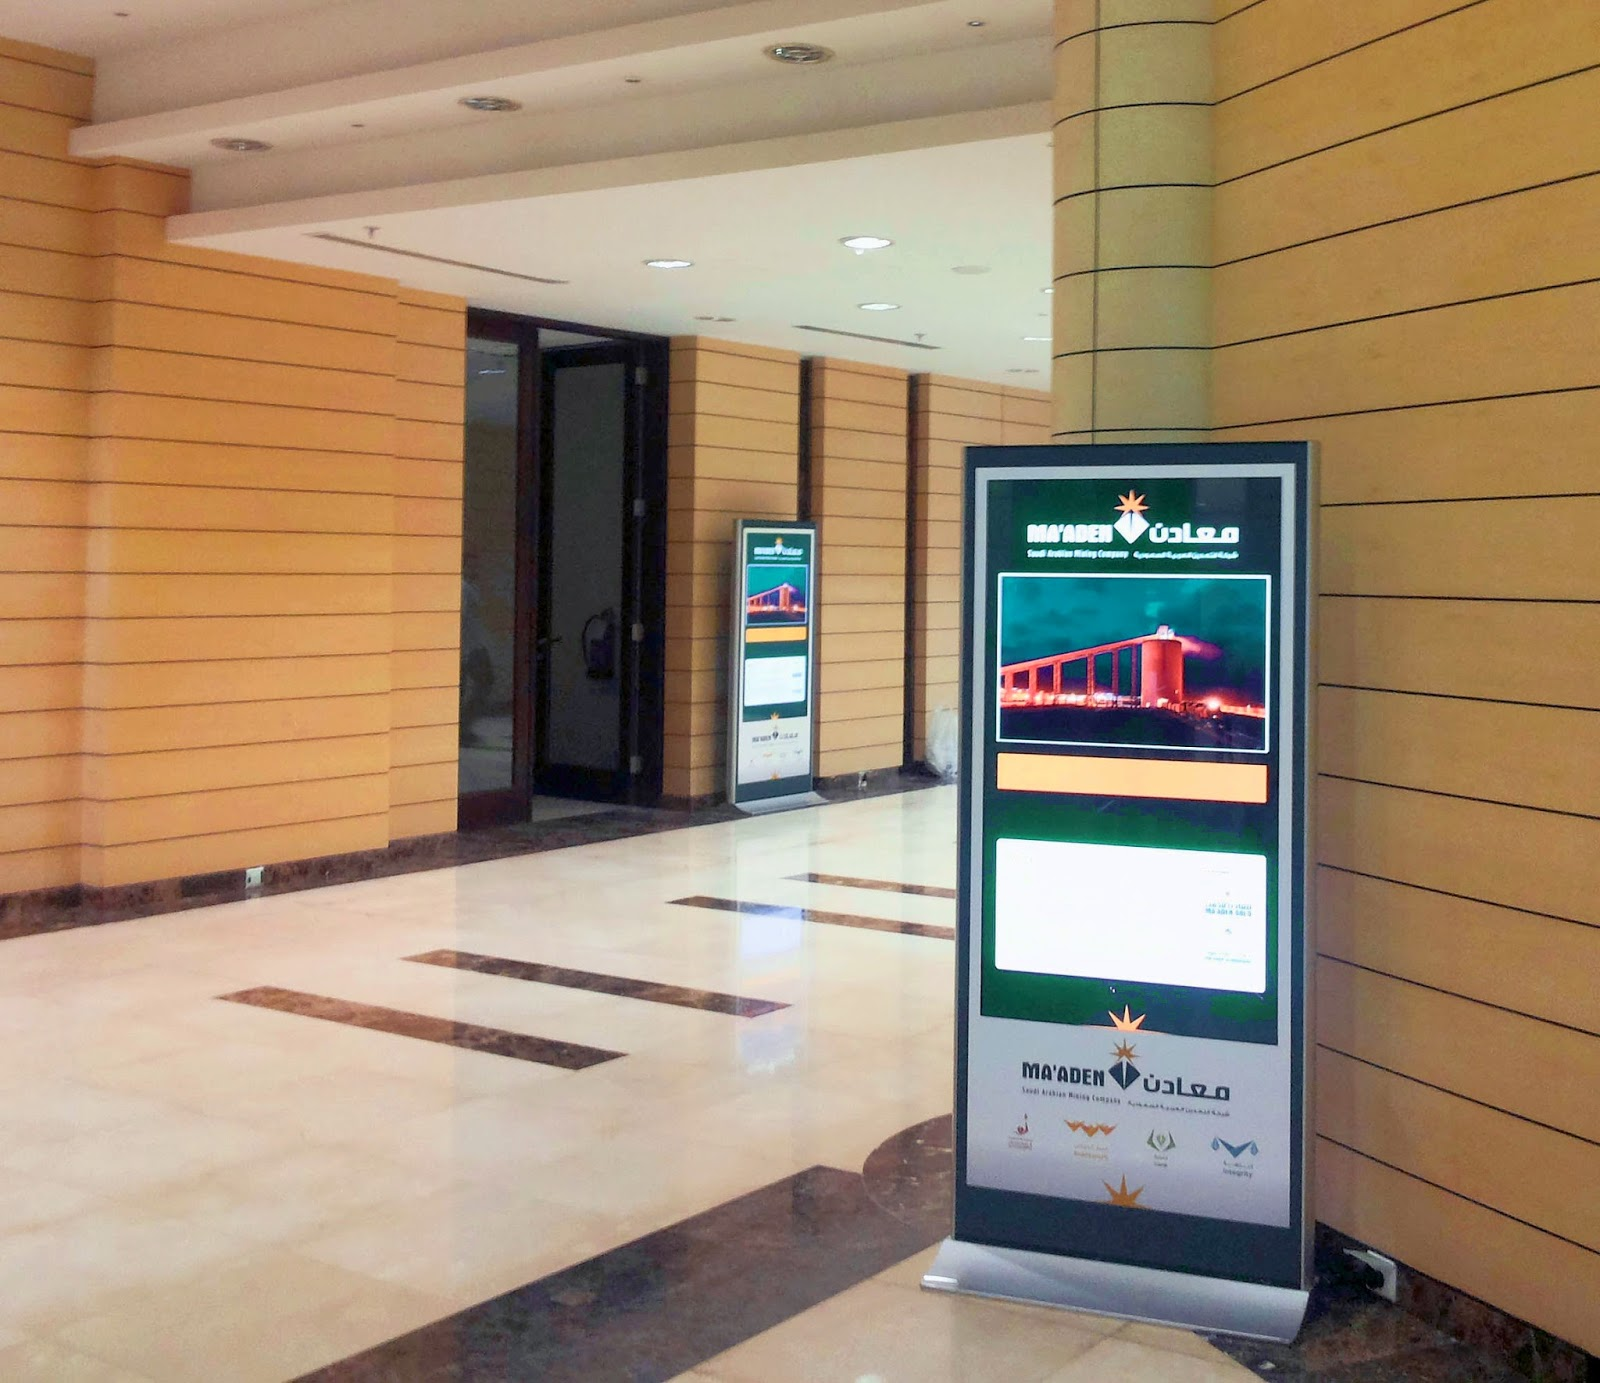 Ma'aden Digital Signage Project